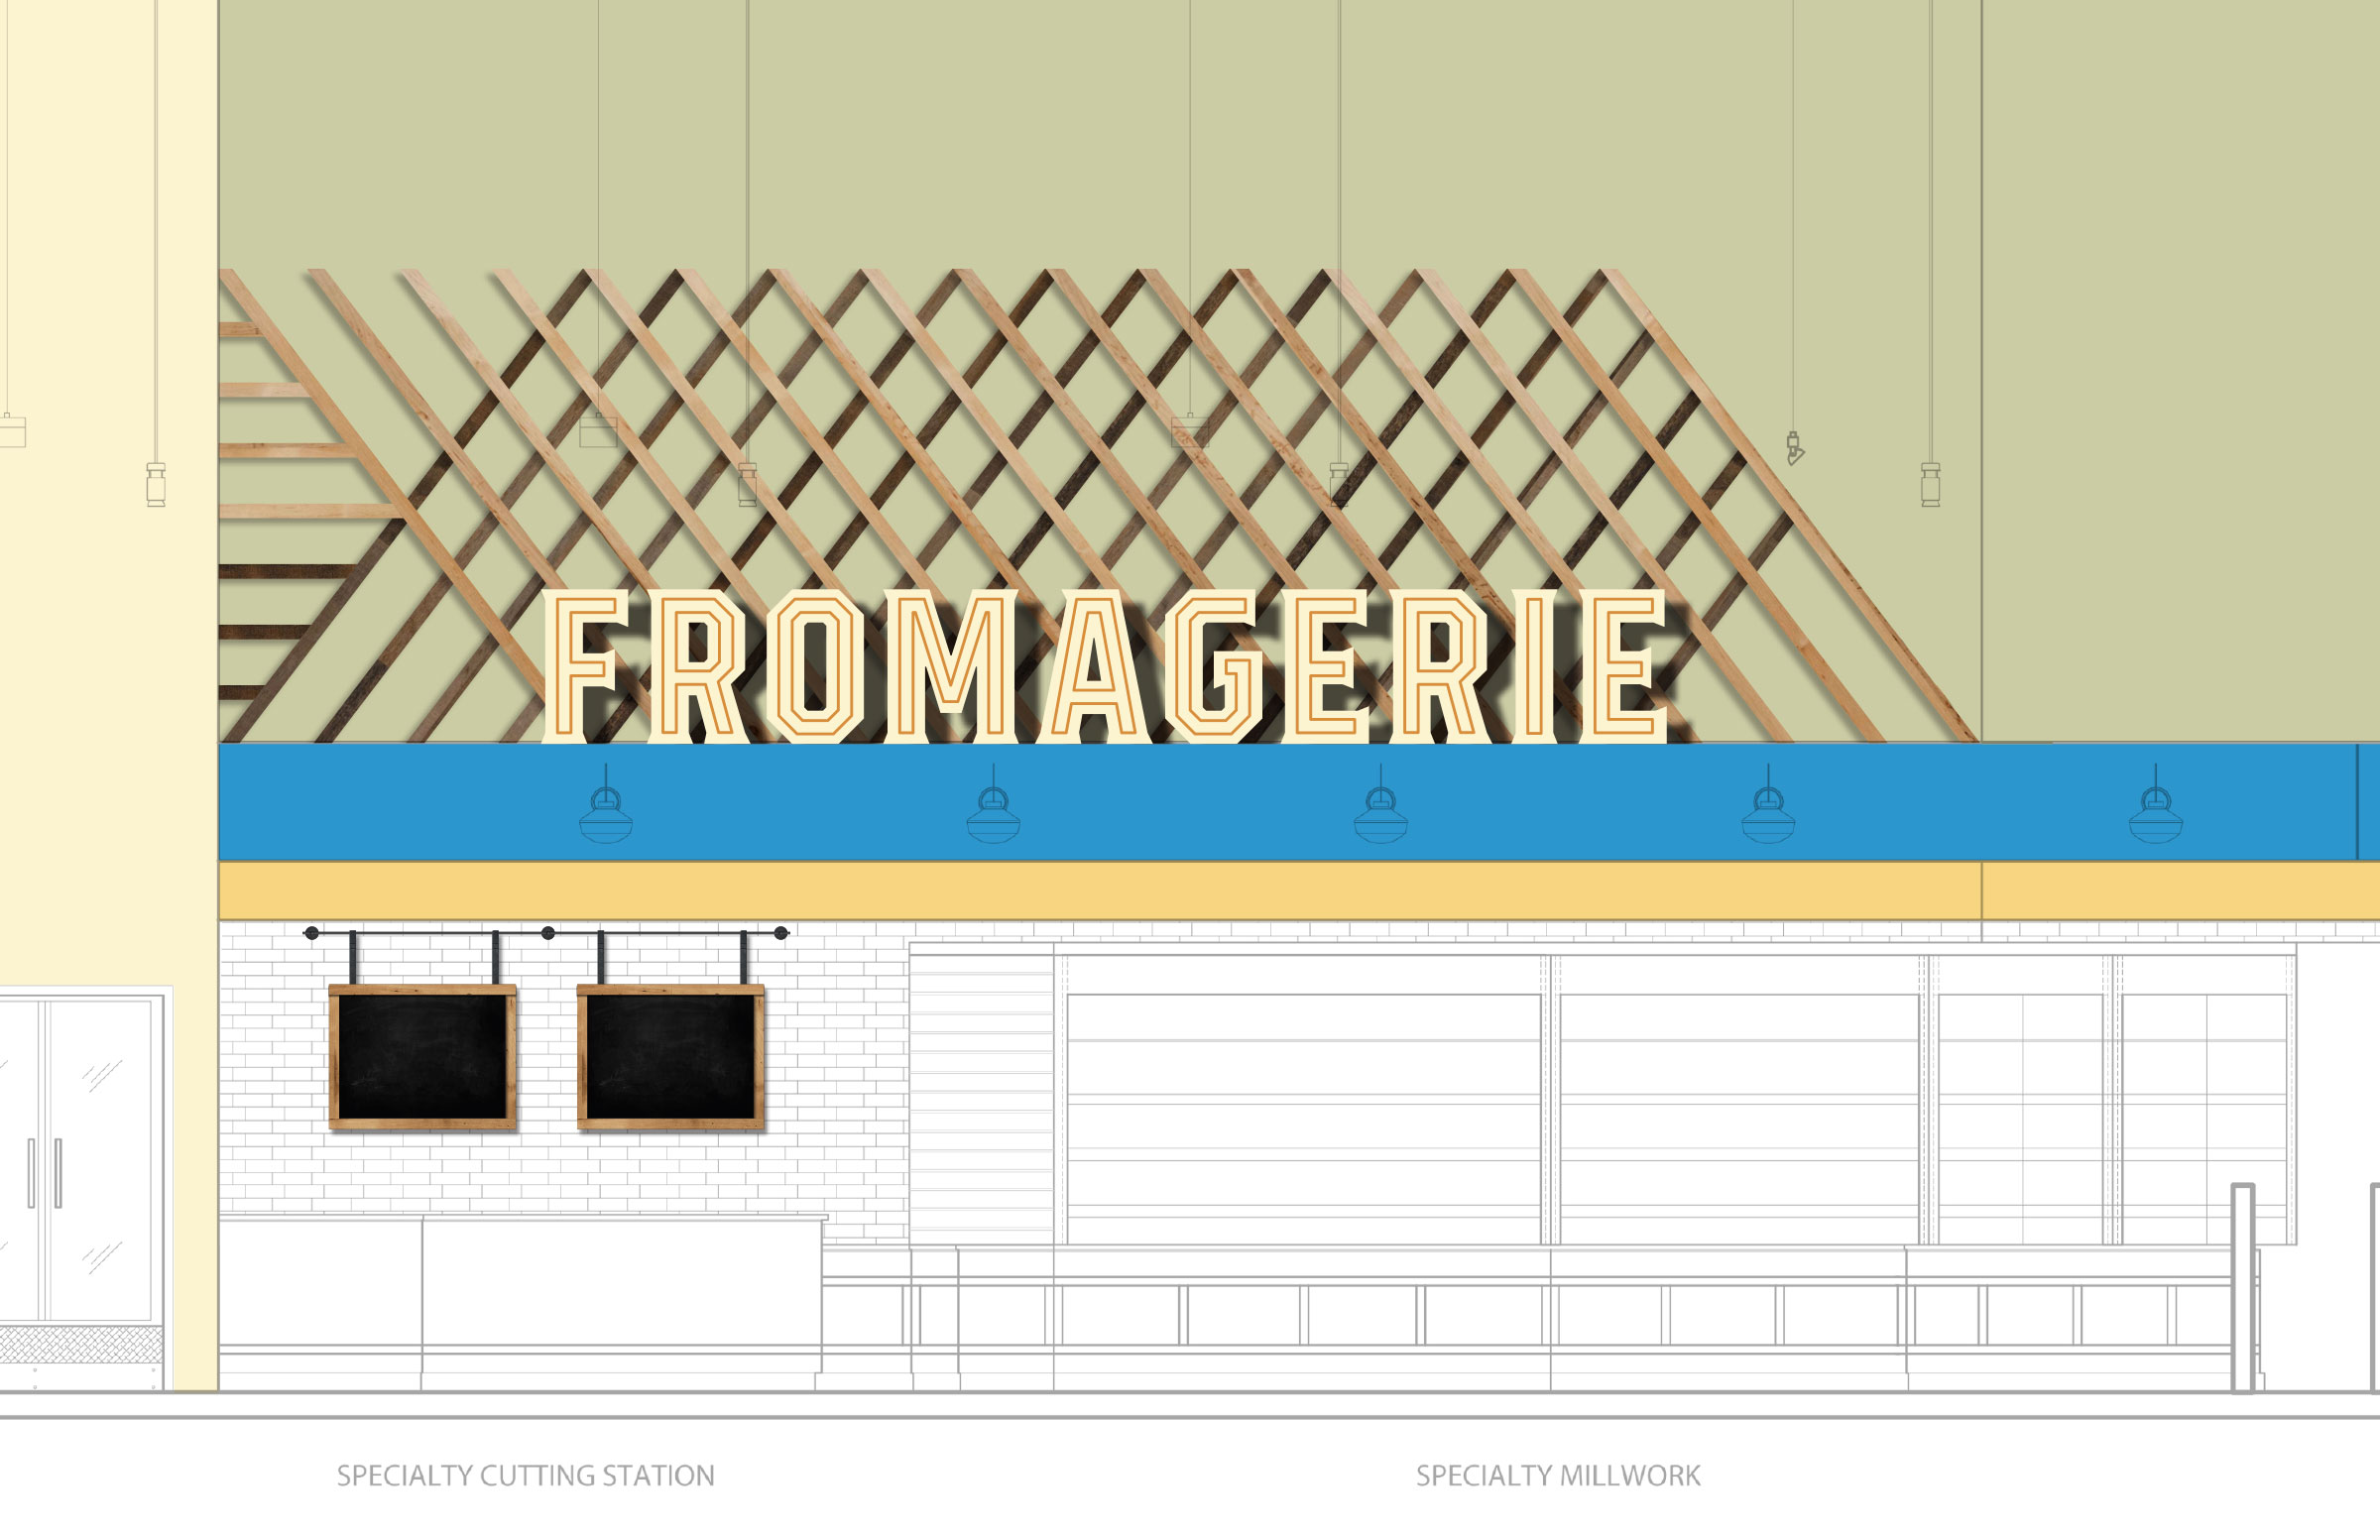 fromagerie_elevation.jpg